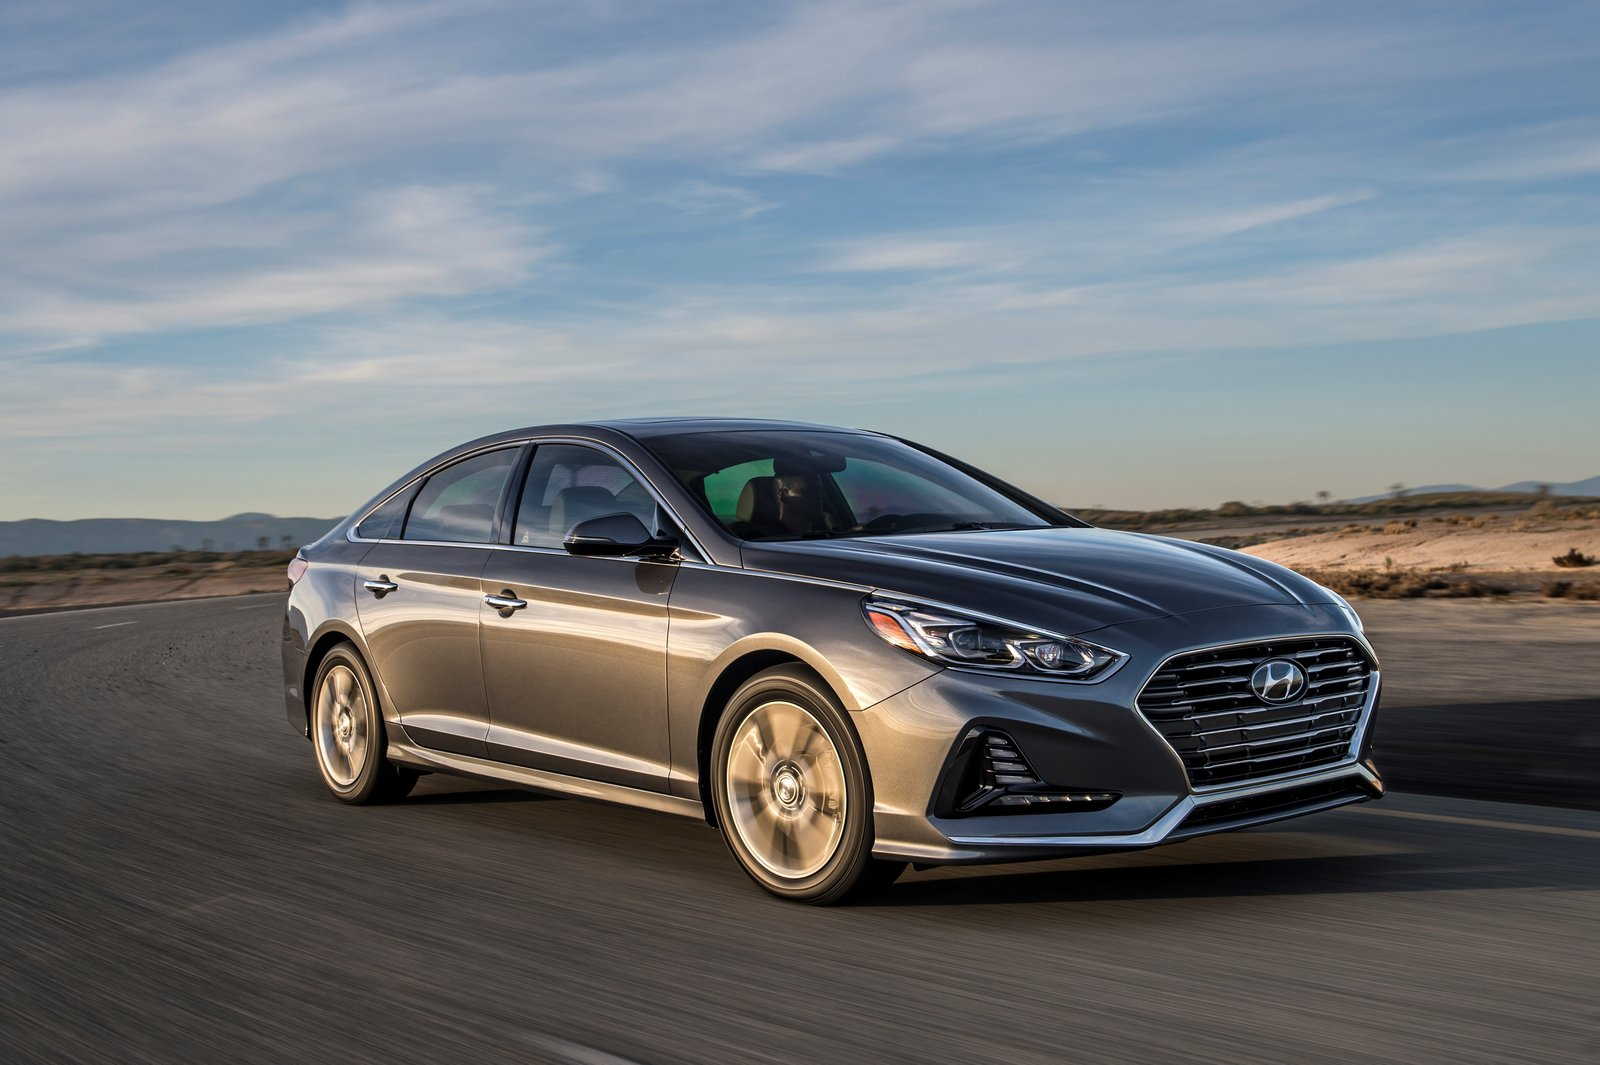 Facelifted 2018 Hyundai Sonata Arrives This Summer, From ...